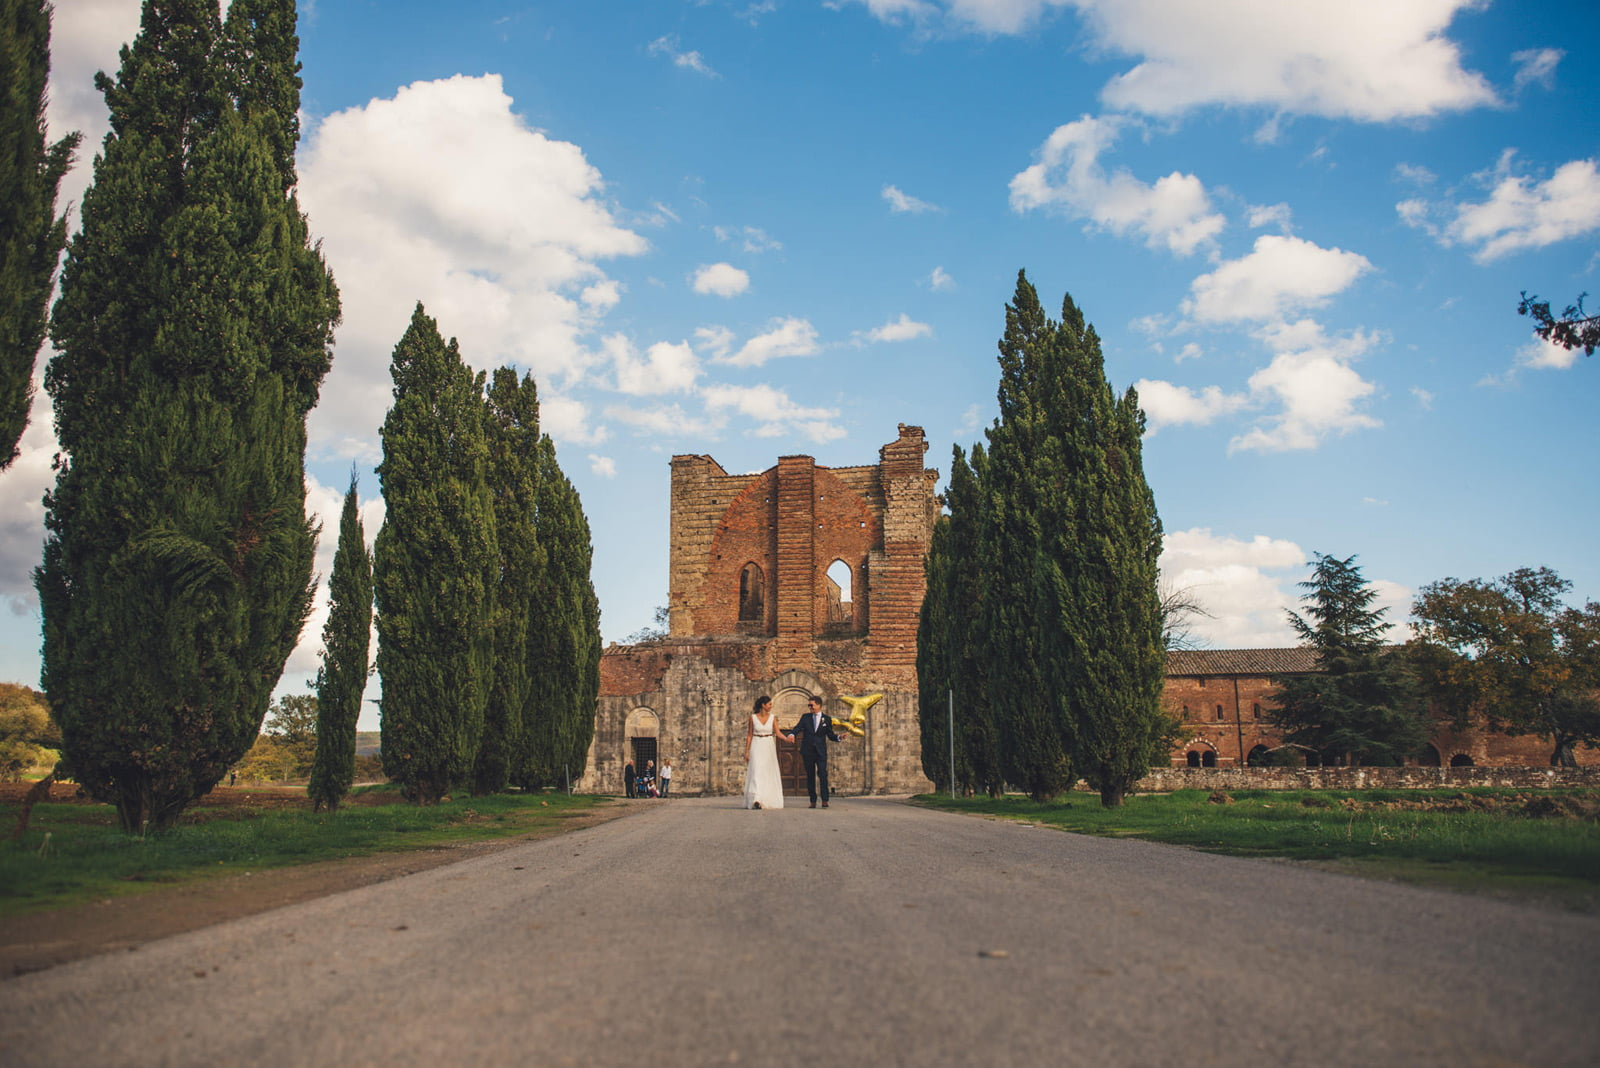 083-wedding-tuscany-san-galgano-siena-photographer